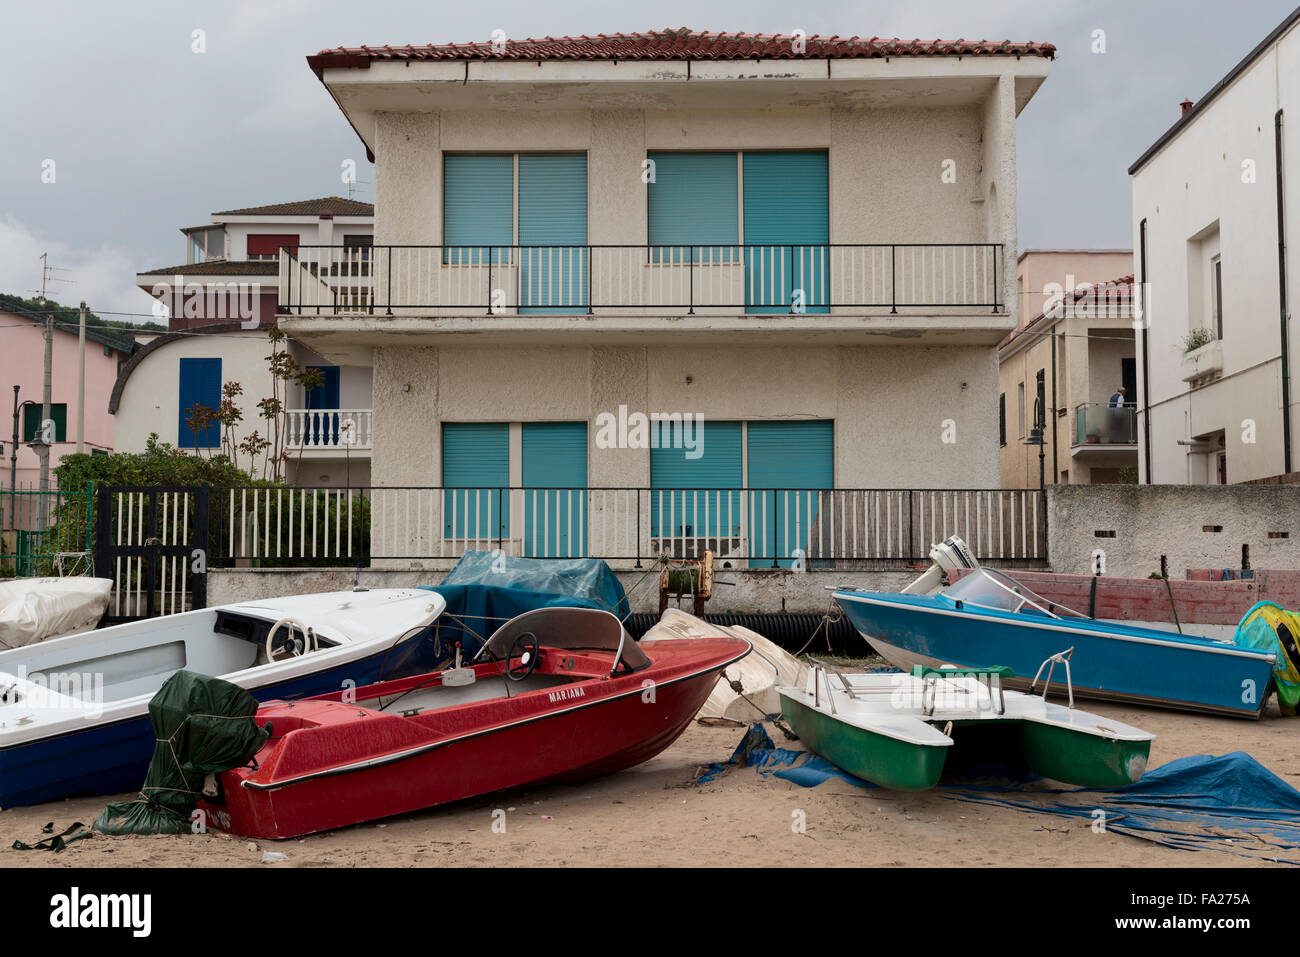 Beached boats on the seaside - Stock Image